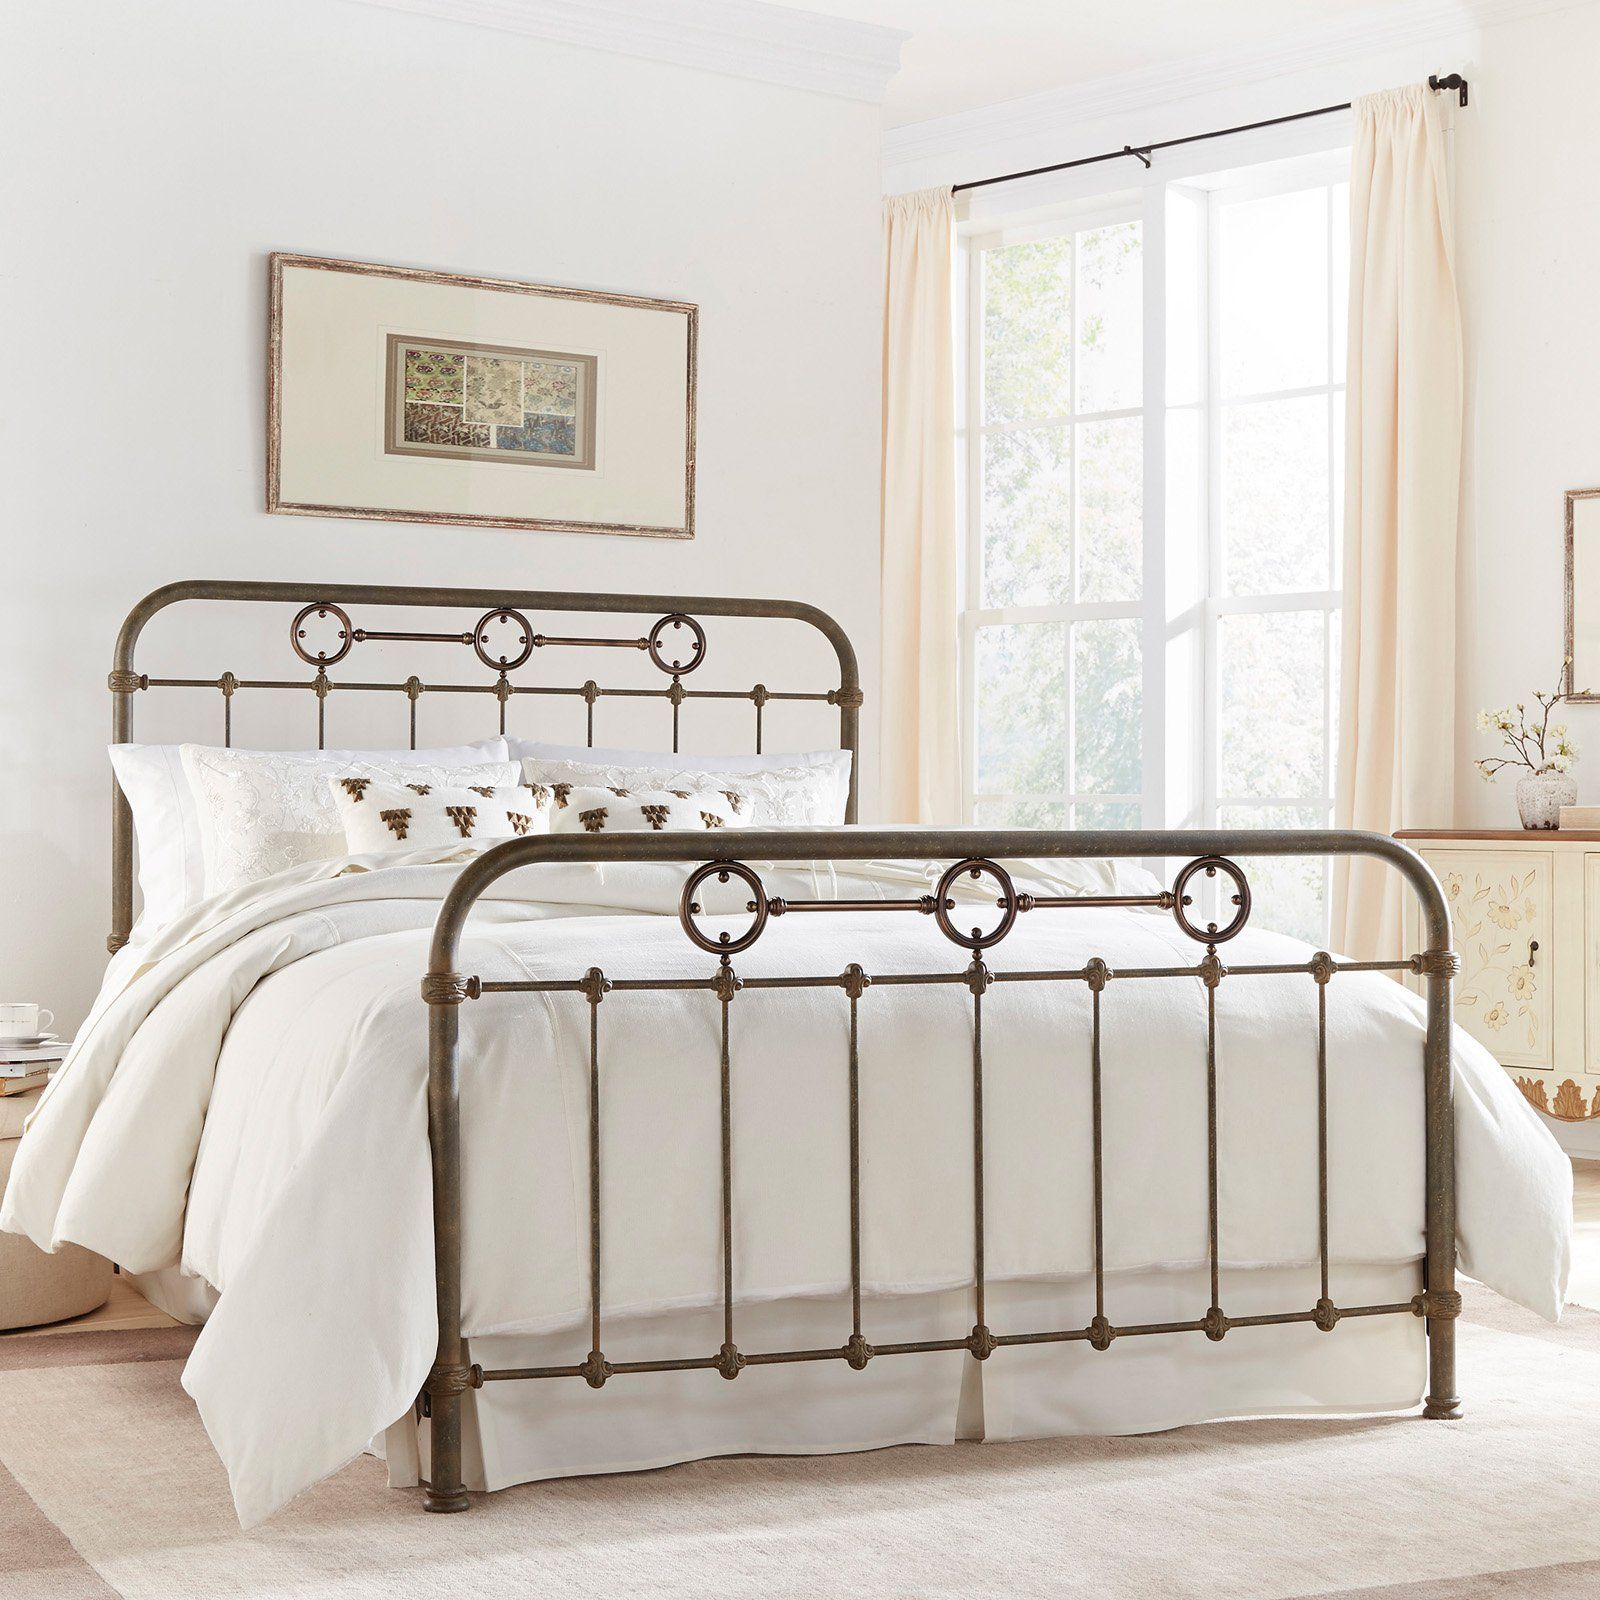 Fashion Bed Group Madera Bed Size King Bed Styling King Metal